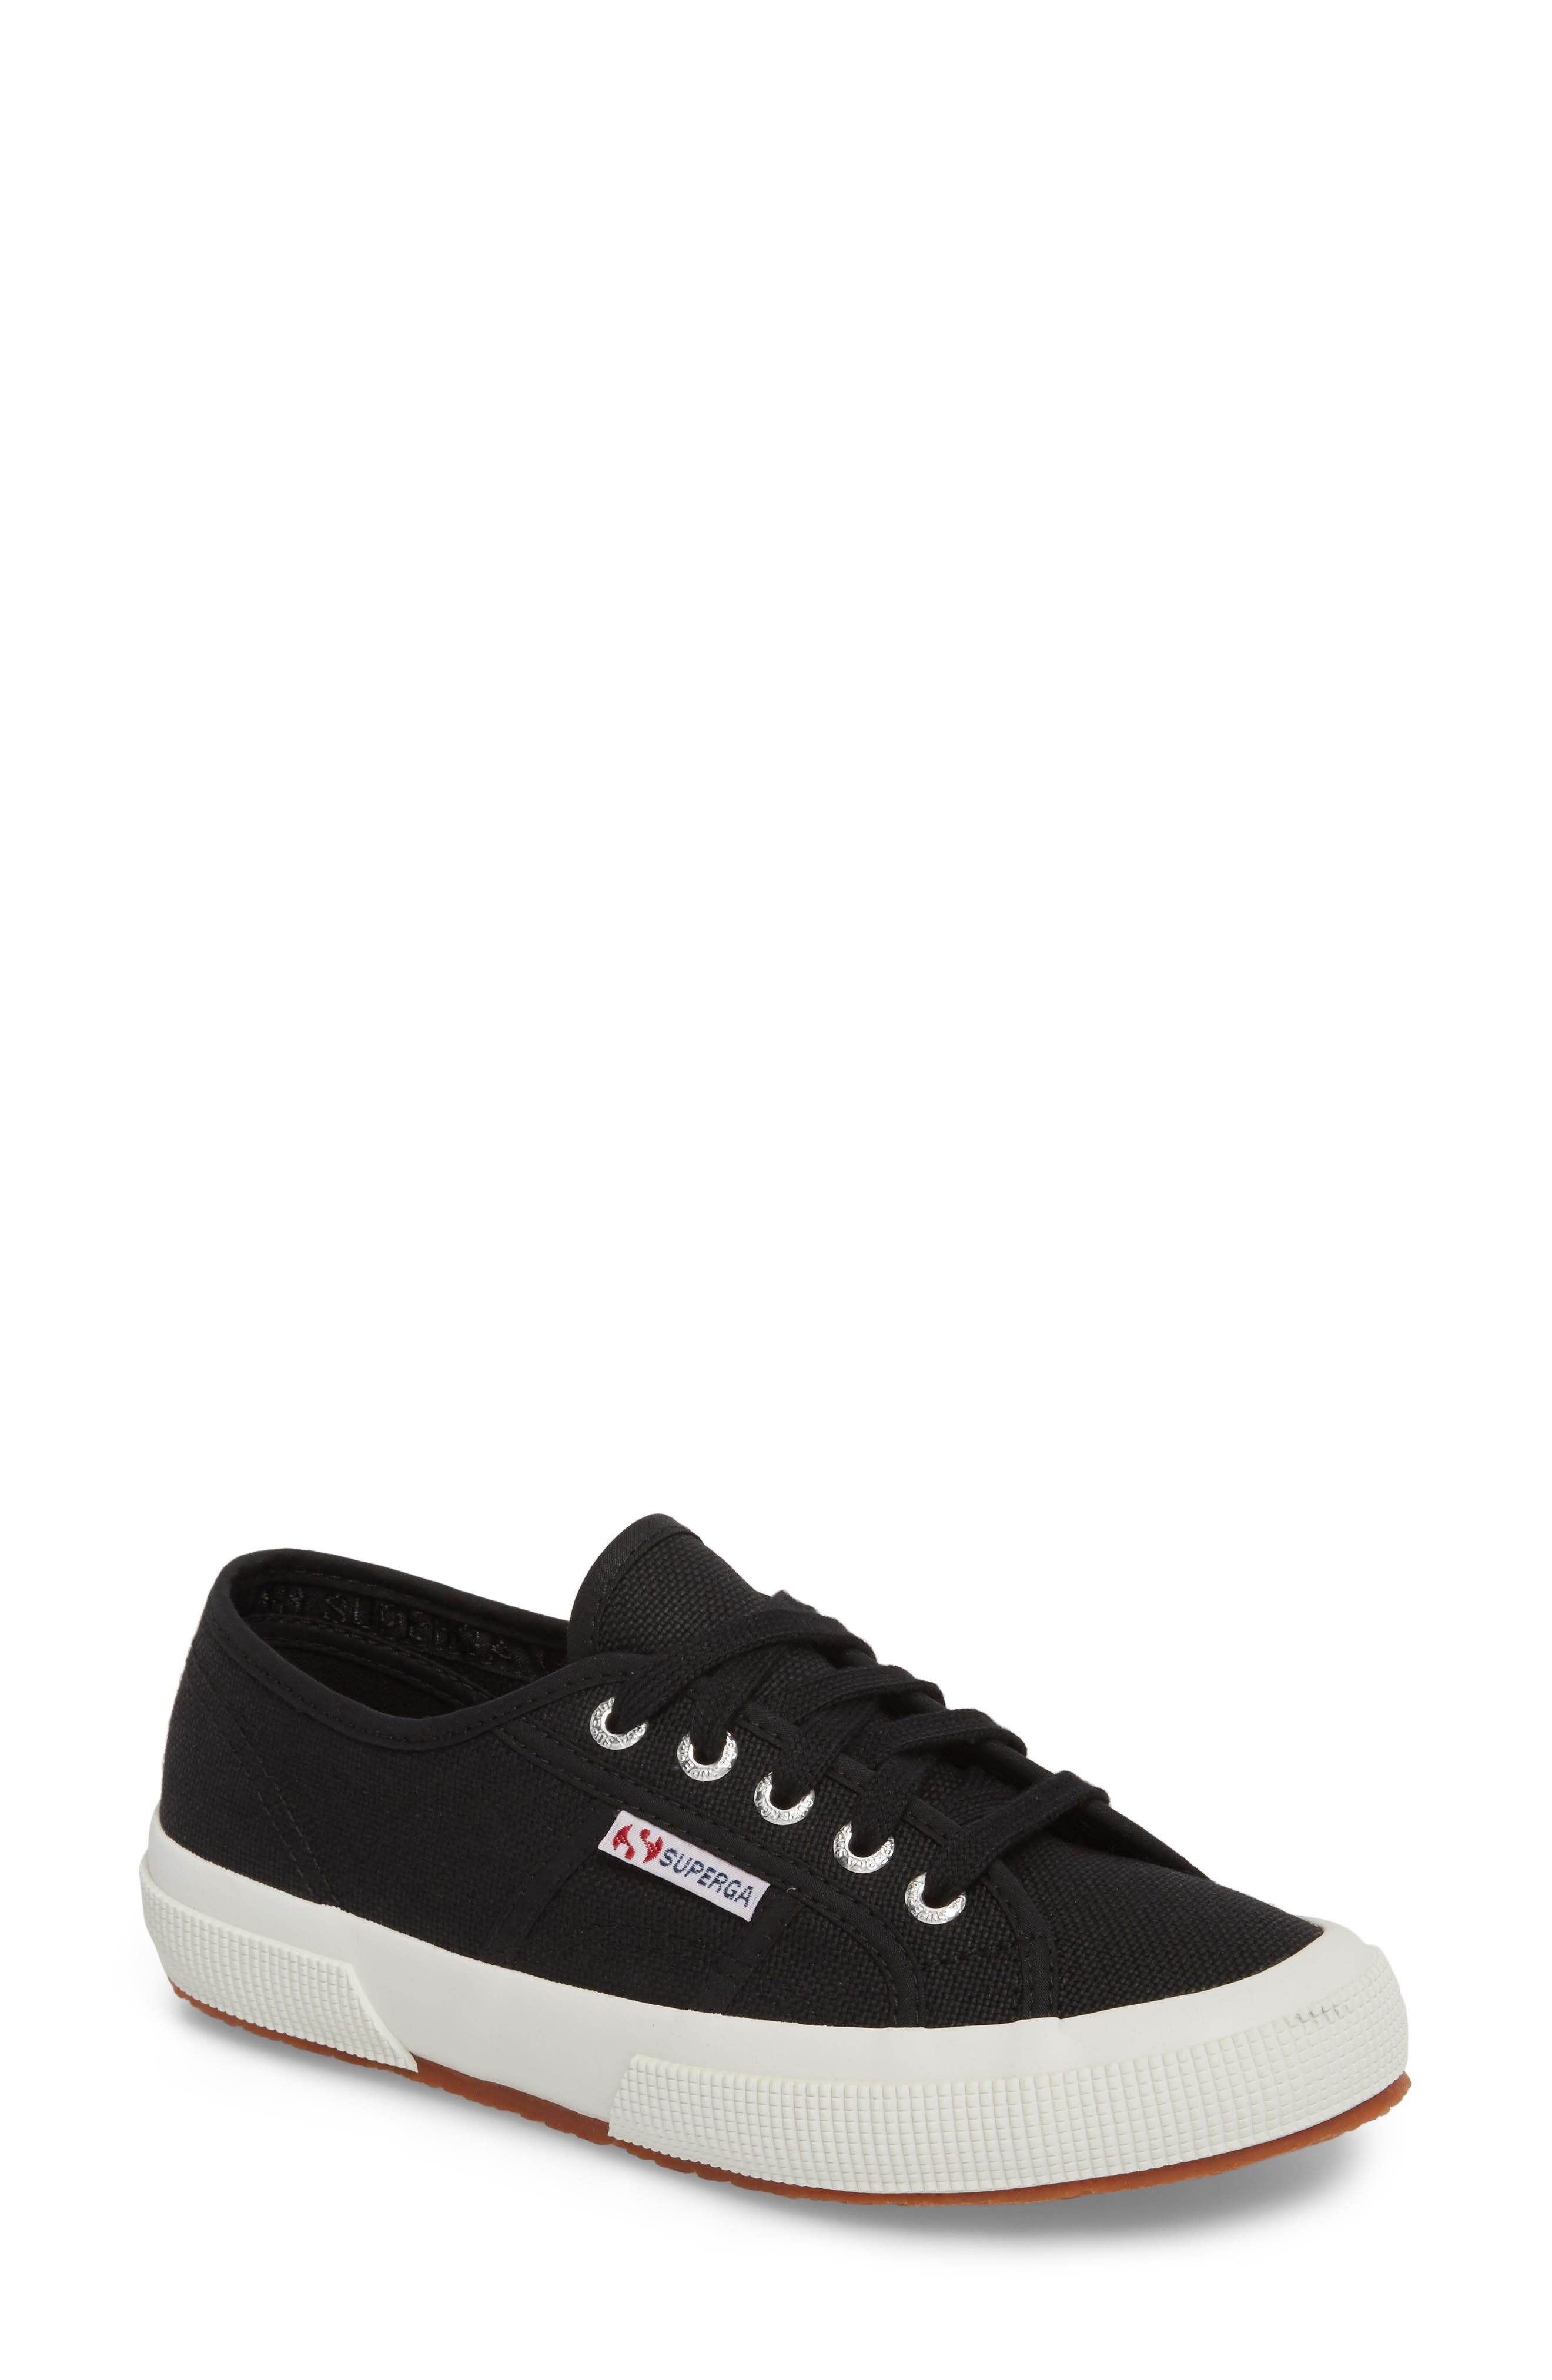 'Cotu' Sneaker,                         Main,                         color, BLACK/ BLACK/ WHITE